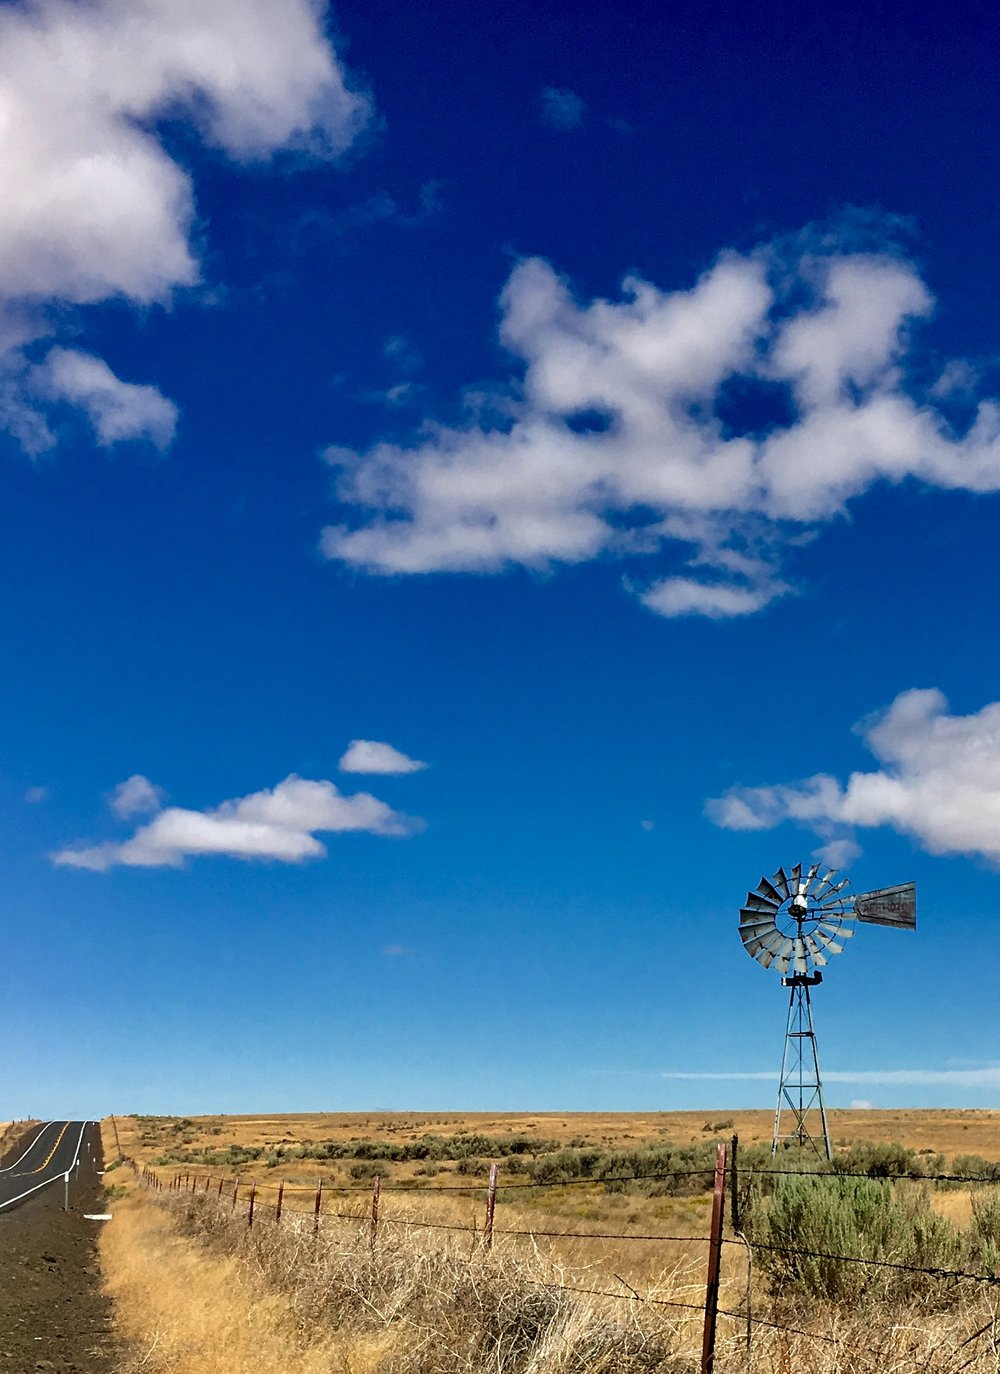 Wide open spaces of Central Oregon, if you see a Windmill most likely there was a home located on the site at one time.